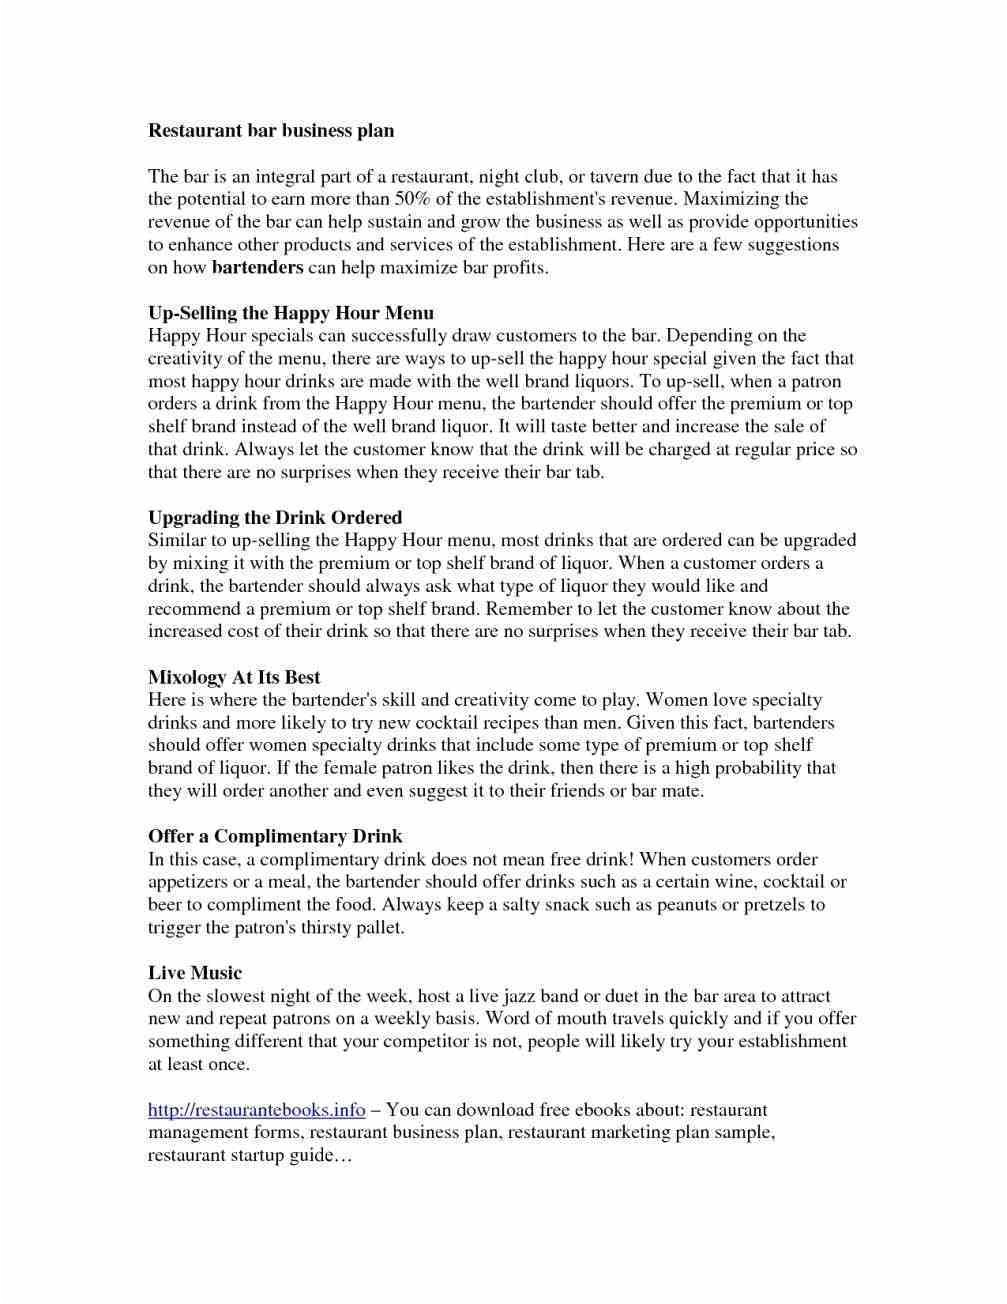 business plan doc examples of resume format rhibscoilcom for beauty salon sample free executive summary rhgenxegcom business mobile barber shop business plan jpg